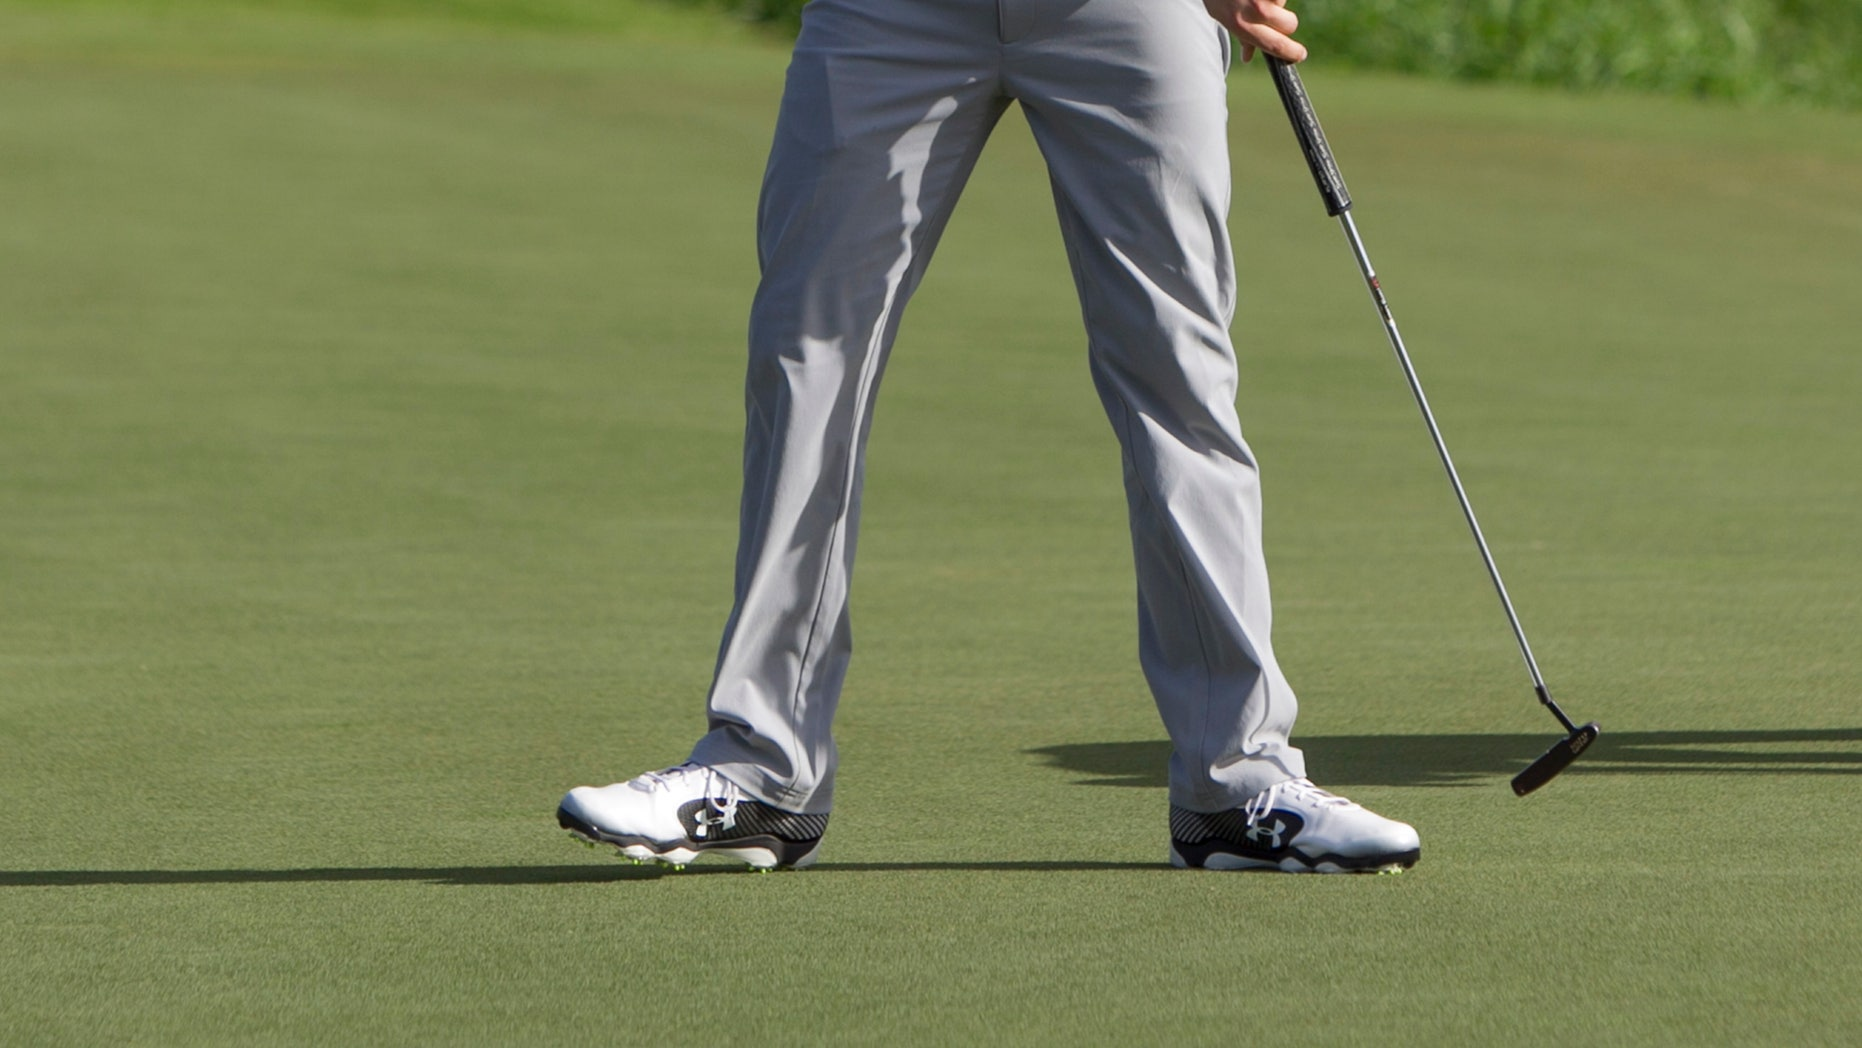 Jordan Spieth reacts to his putt at the end of his final round of the Tournament of Champions golf tournament, Monday, Jan. 6, 2014, in Kapalua, Hawaii.  (AP Photo/Marco Garcia)